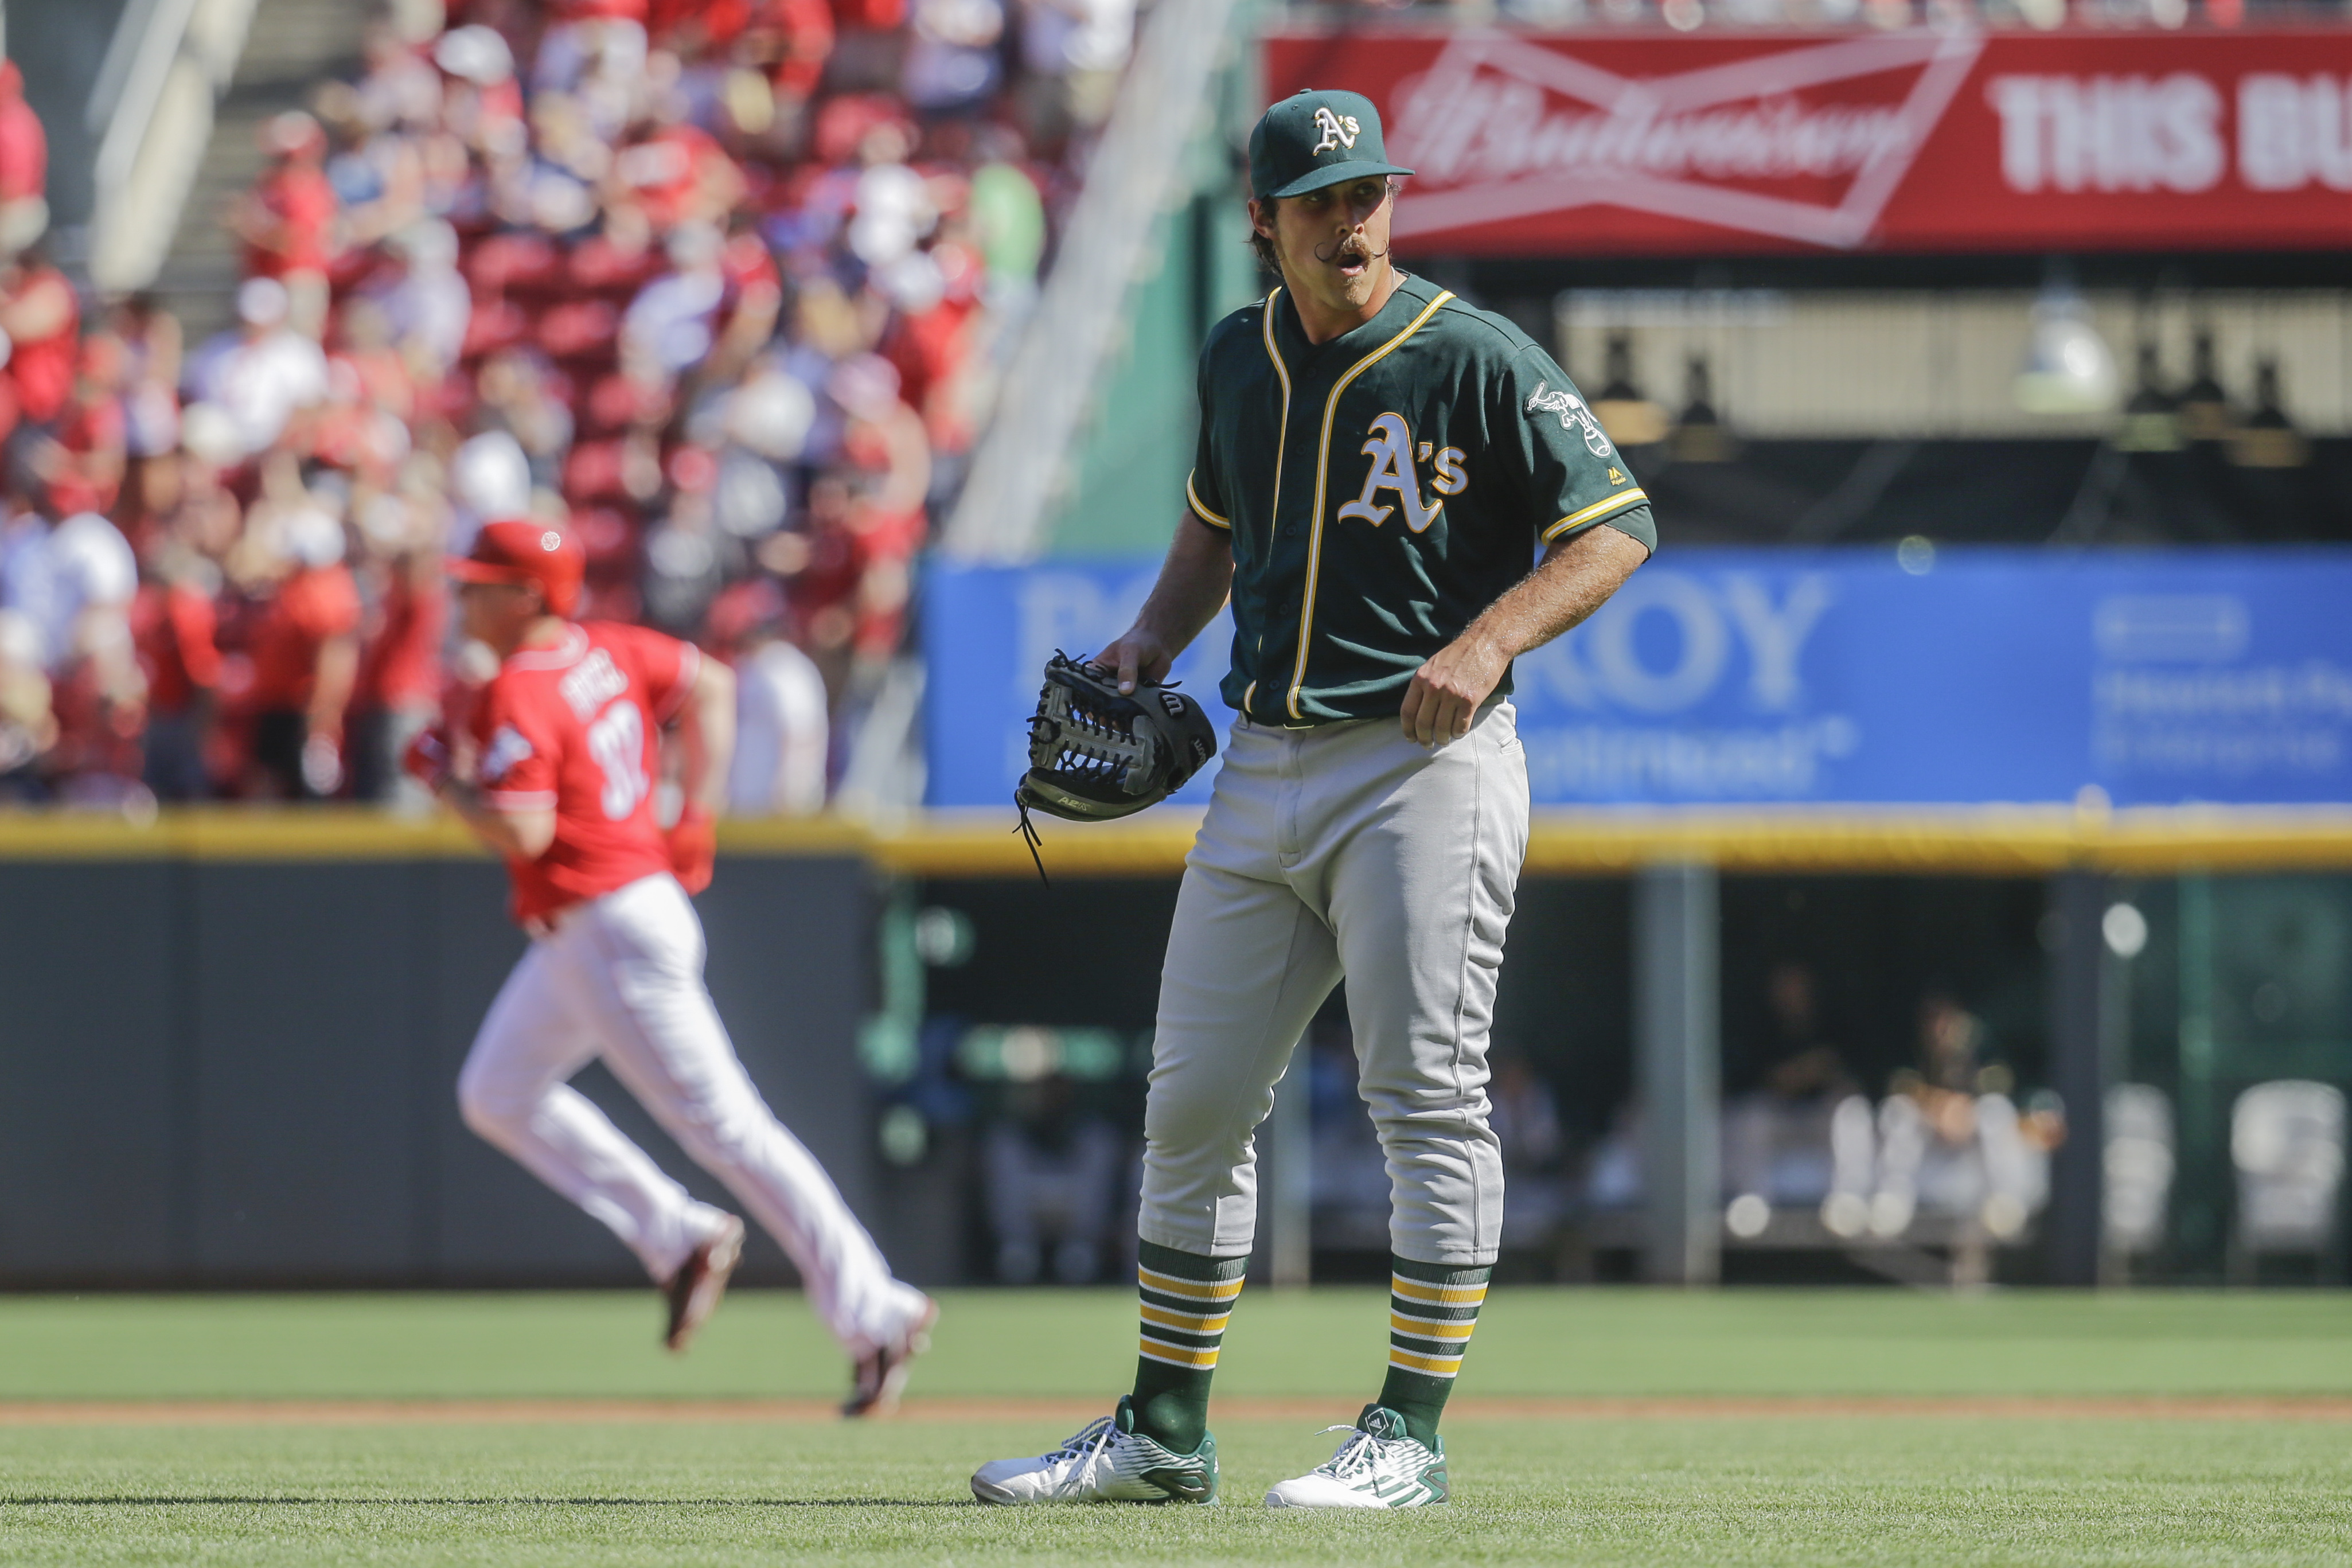 Oakland Athletics starting pitcher Daniel Mengden reacts after giving up a go-ahead two-run home run to Cincinnati Reds' Jay Bruce, left, in the third inning of baseball game, Saturday, June 11, 2016, in Cincinnati. (AP Photo/John Minchillo)